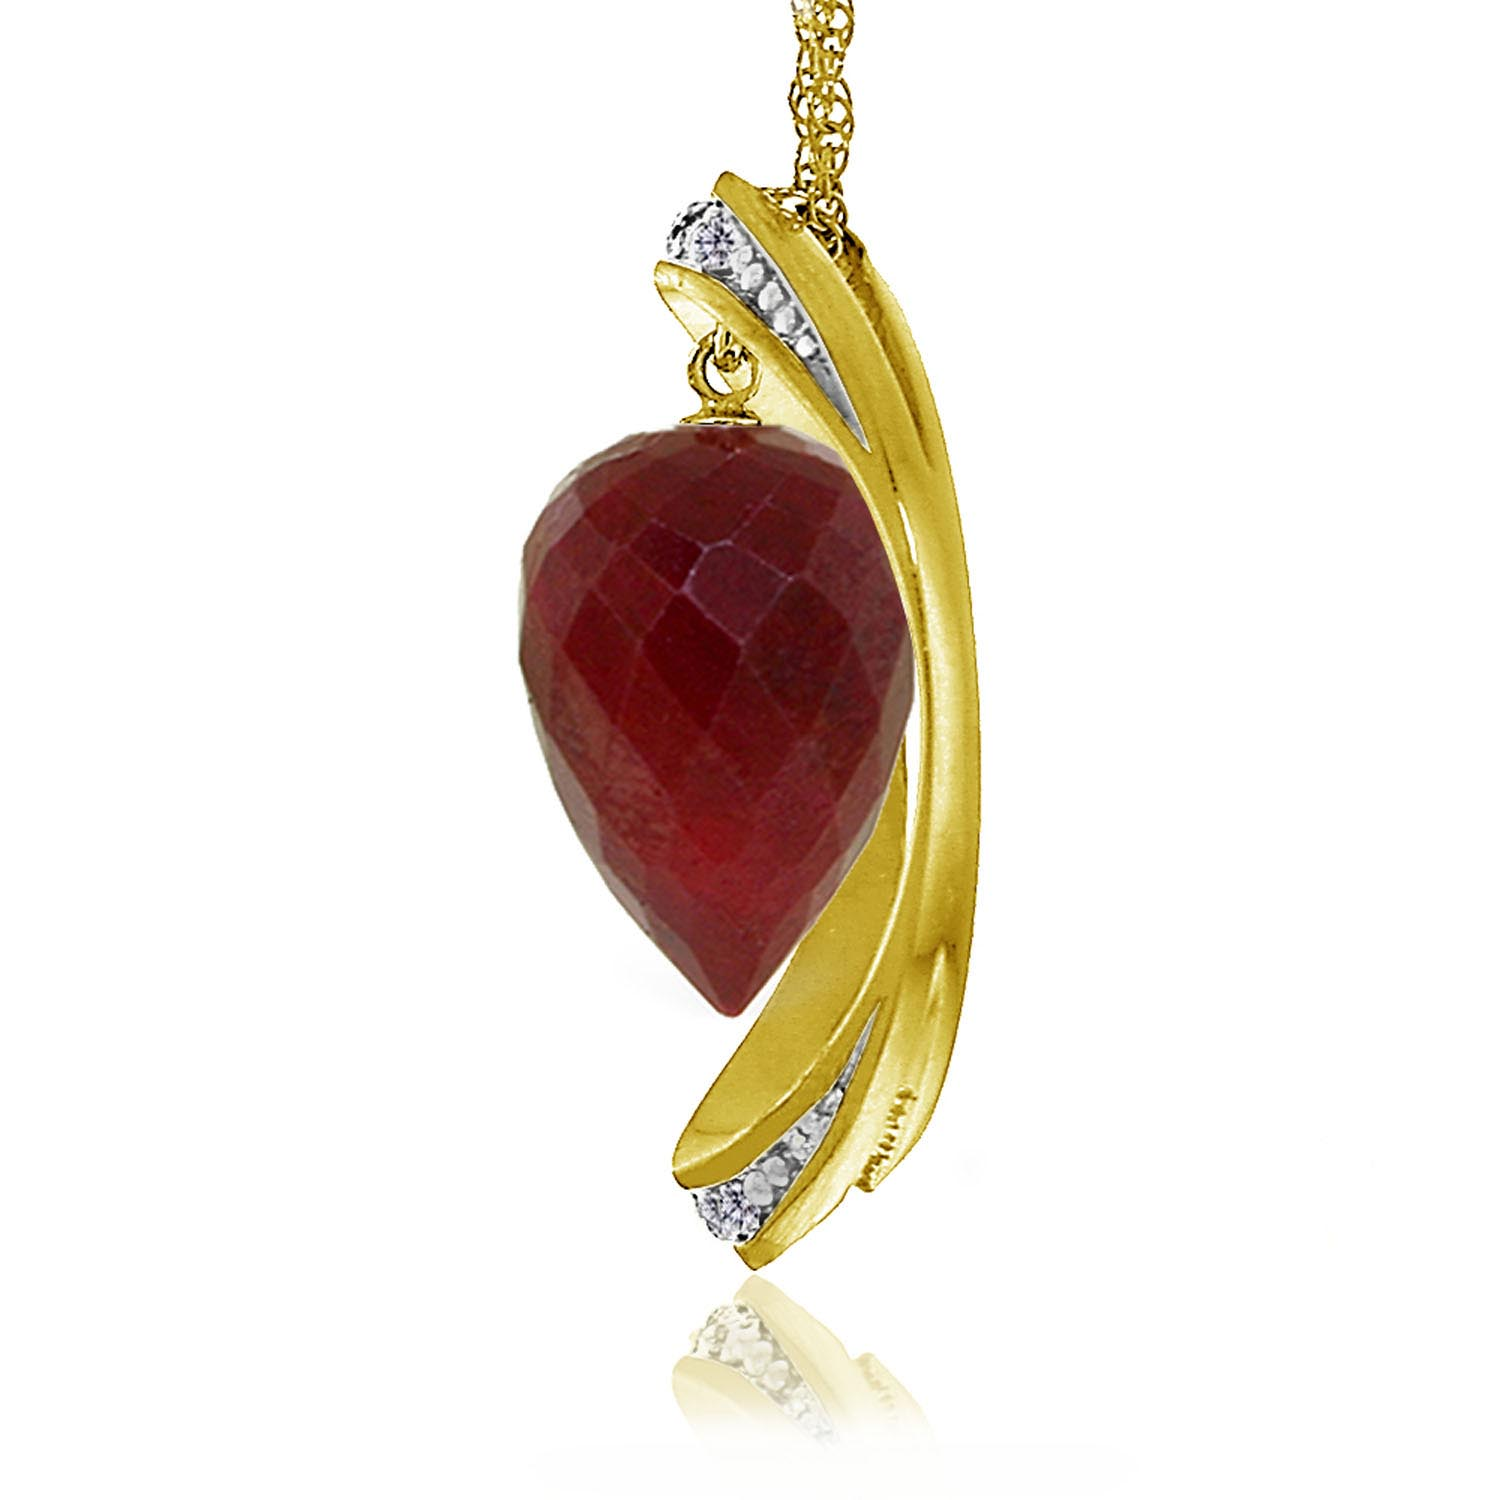 Ruby & Diamond Drop Pendant Necklace in 9ct Gold